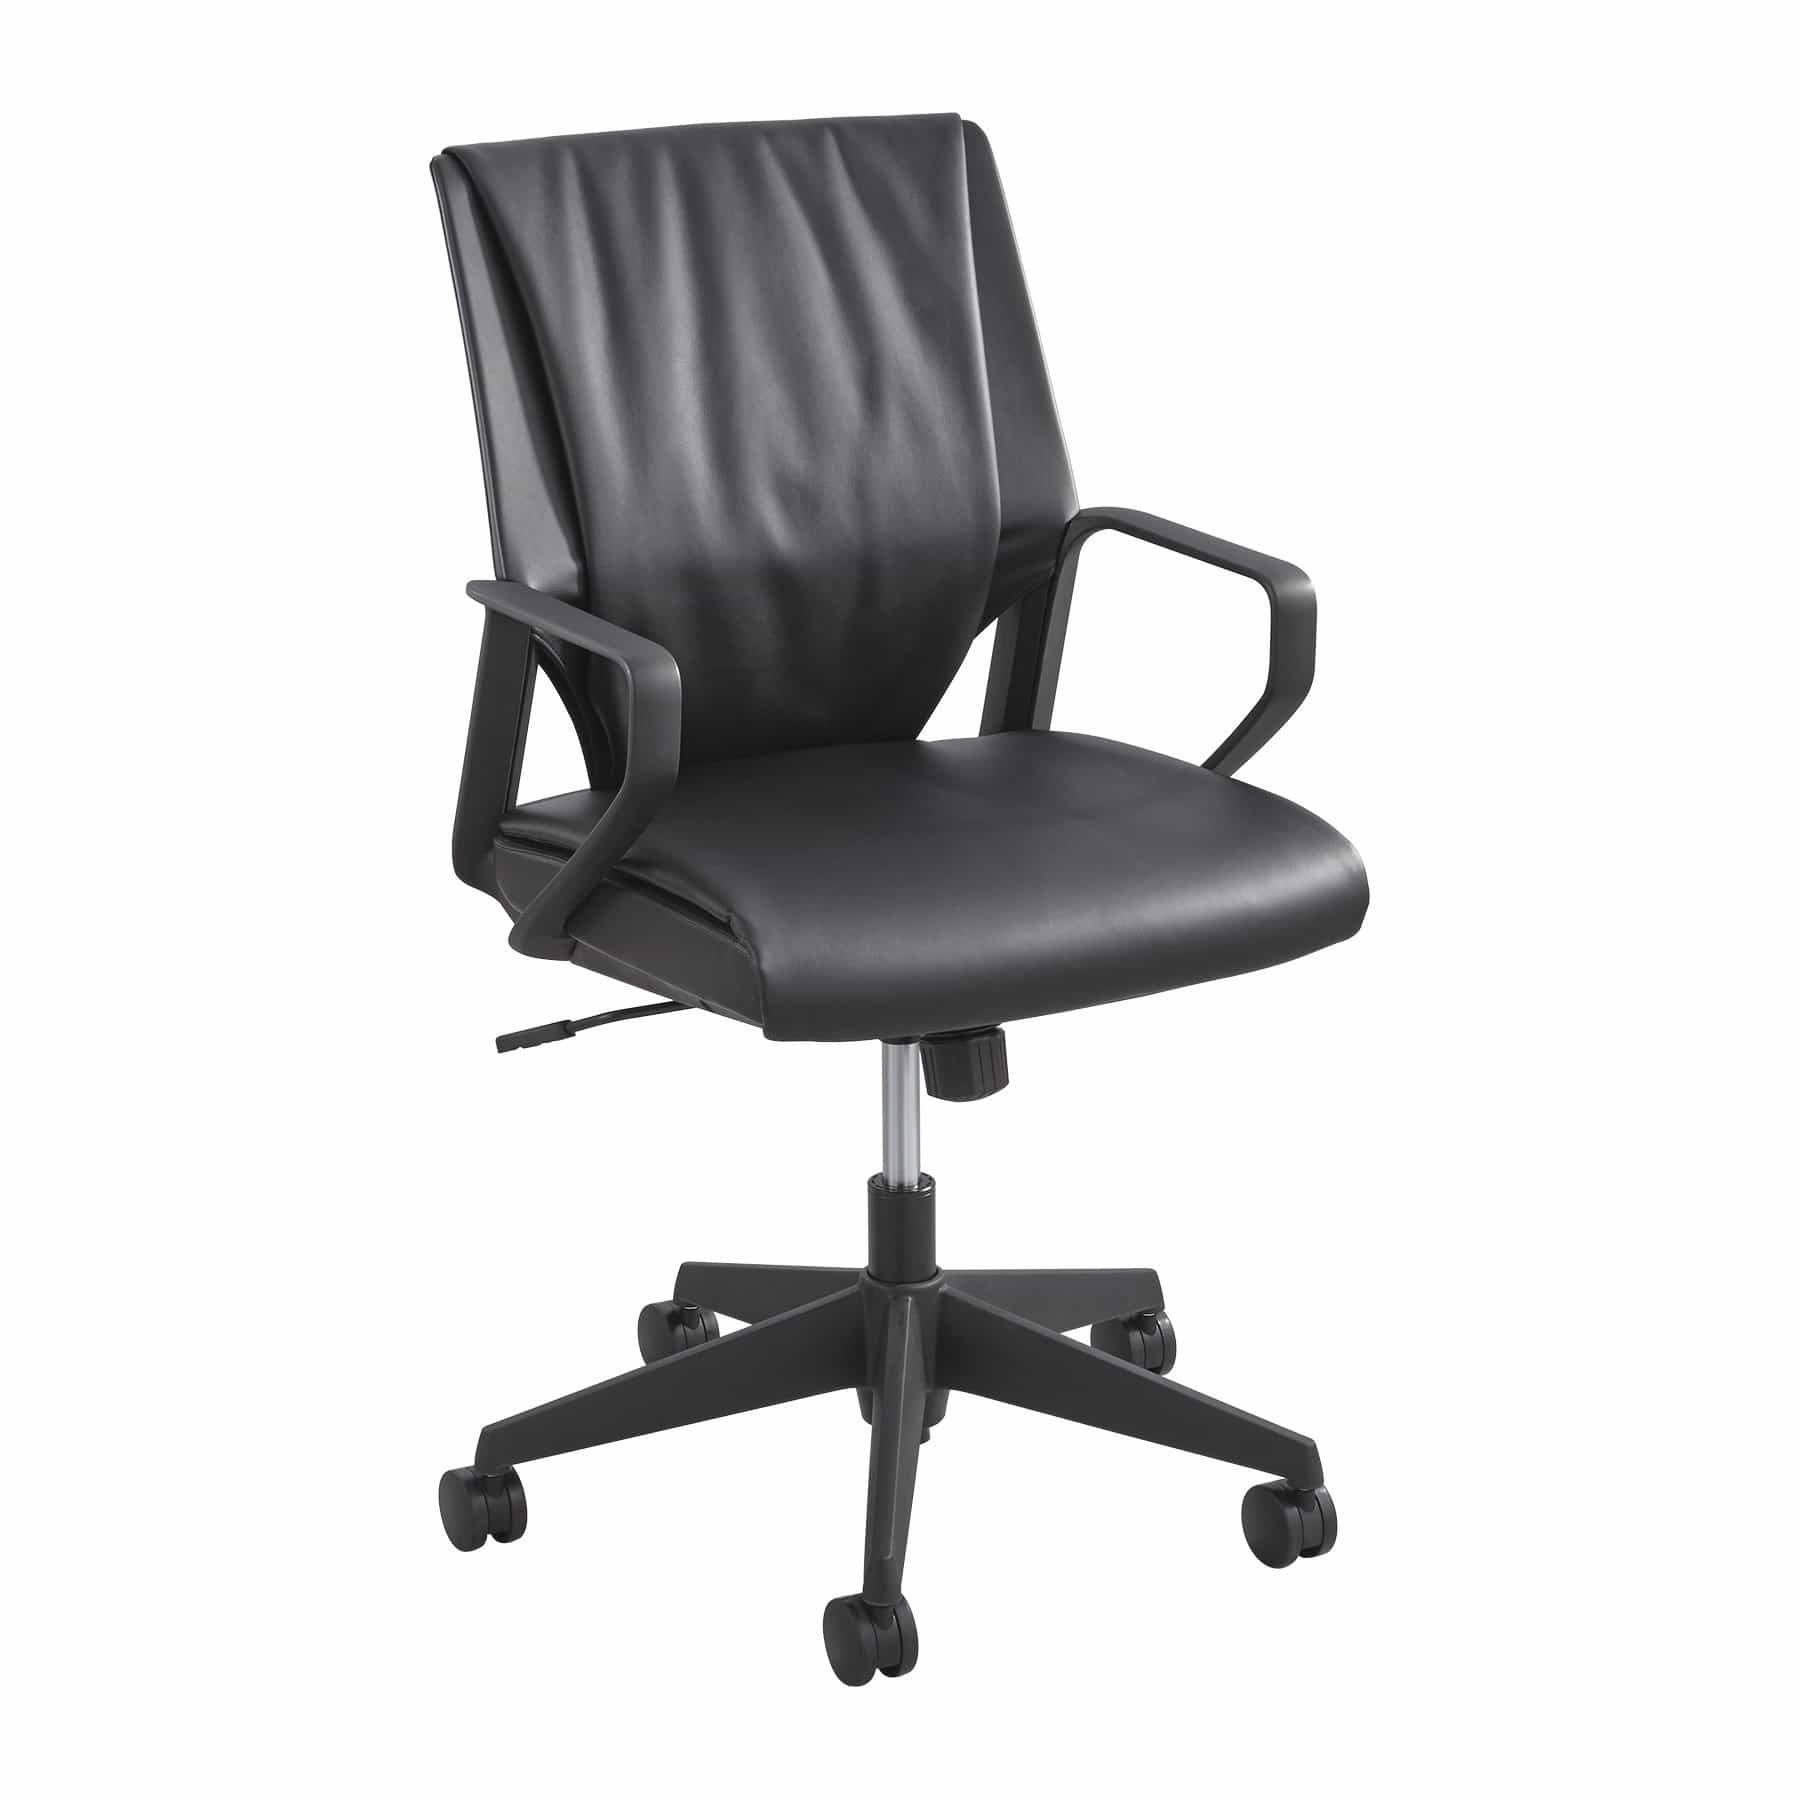 bedinhome - 5076BL Office Furniture Priya Leather seat & Mid Back nylon loop arms Executive Chair - Safco - Executive Seating